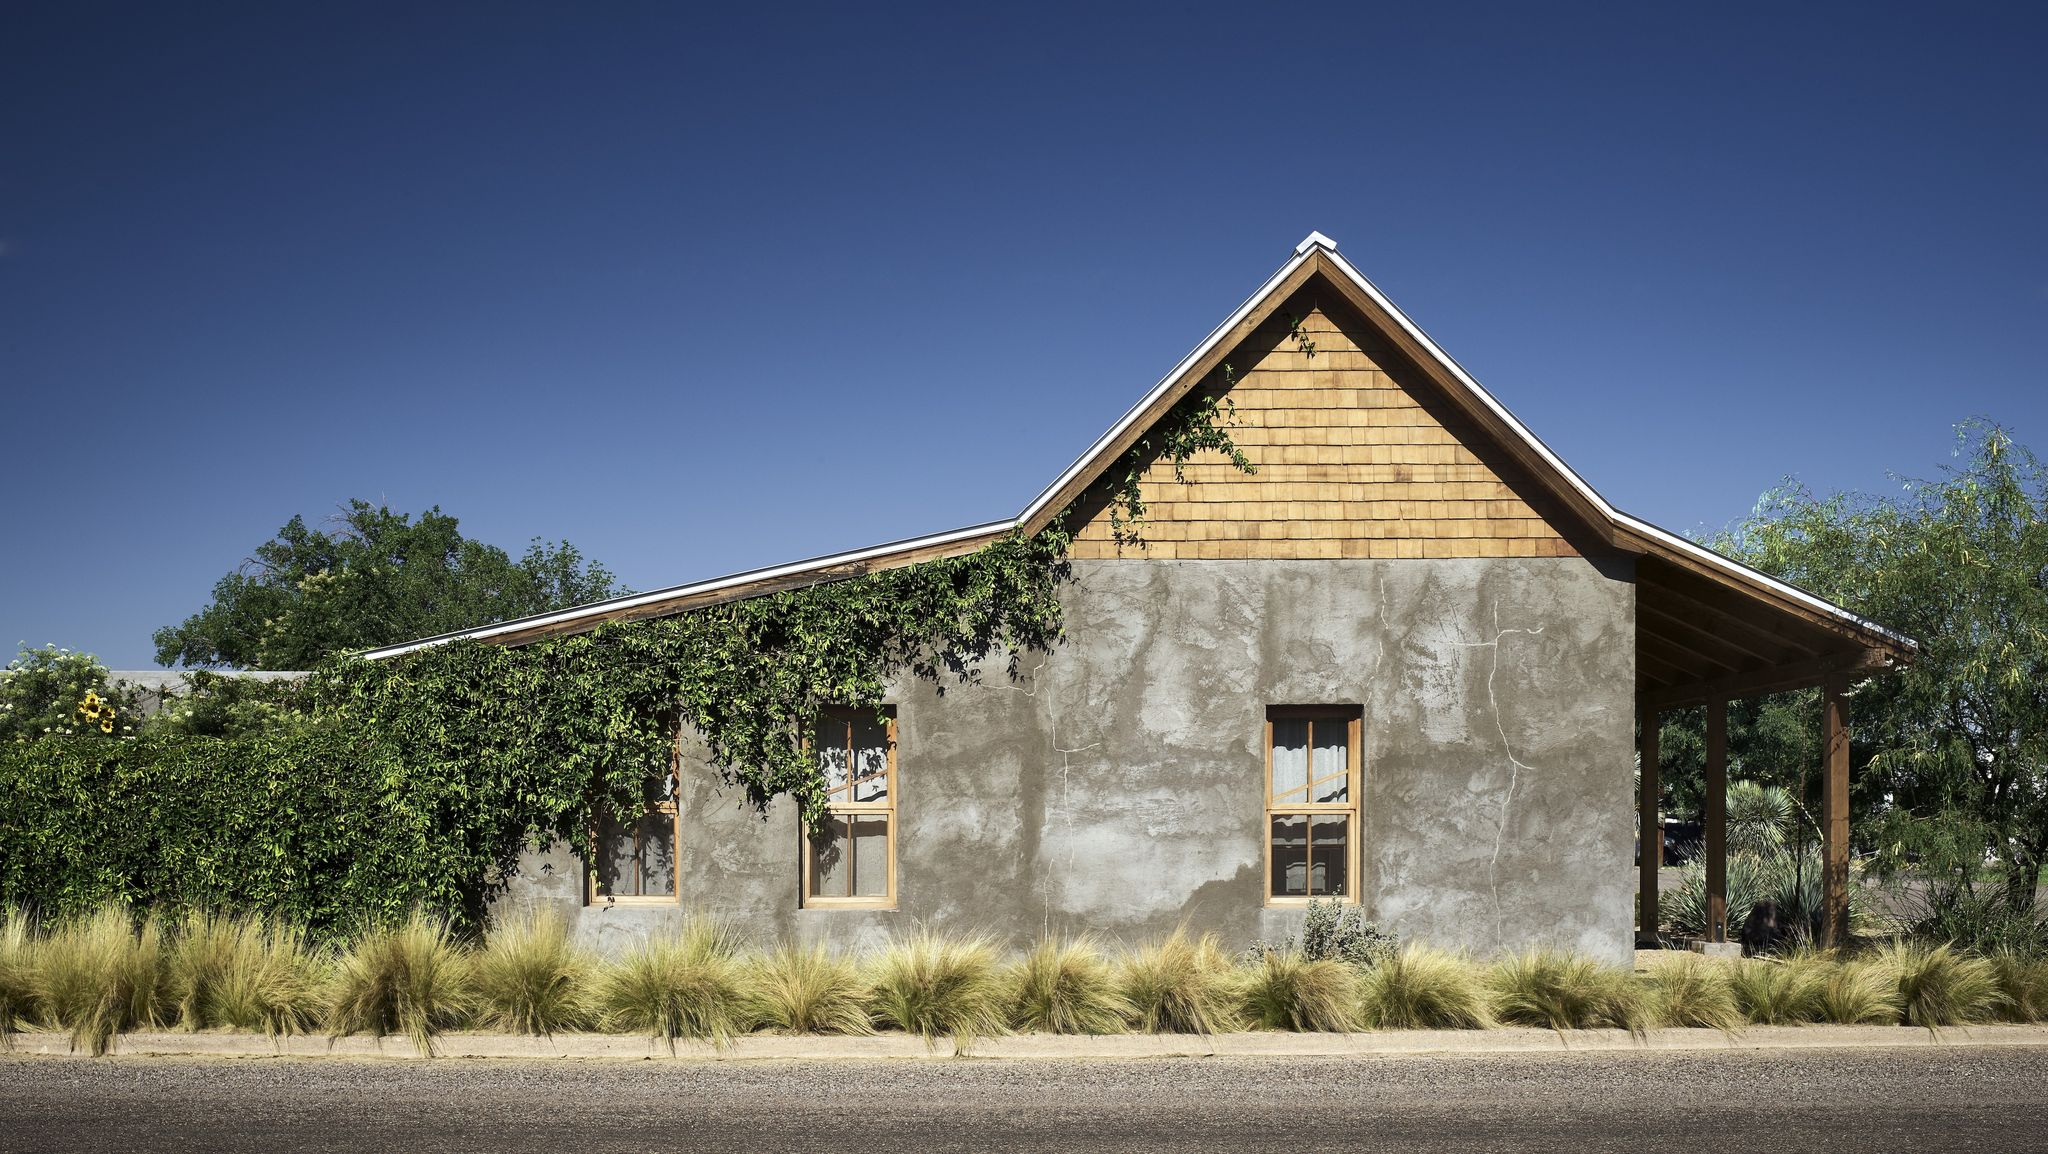 How an Abandoned Texas Home Is Restored Into an Ethereal Country Getaway